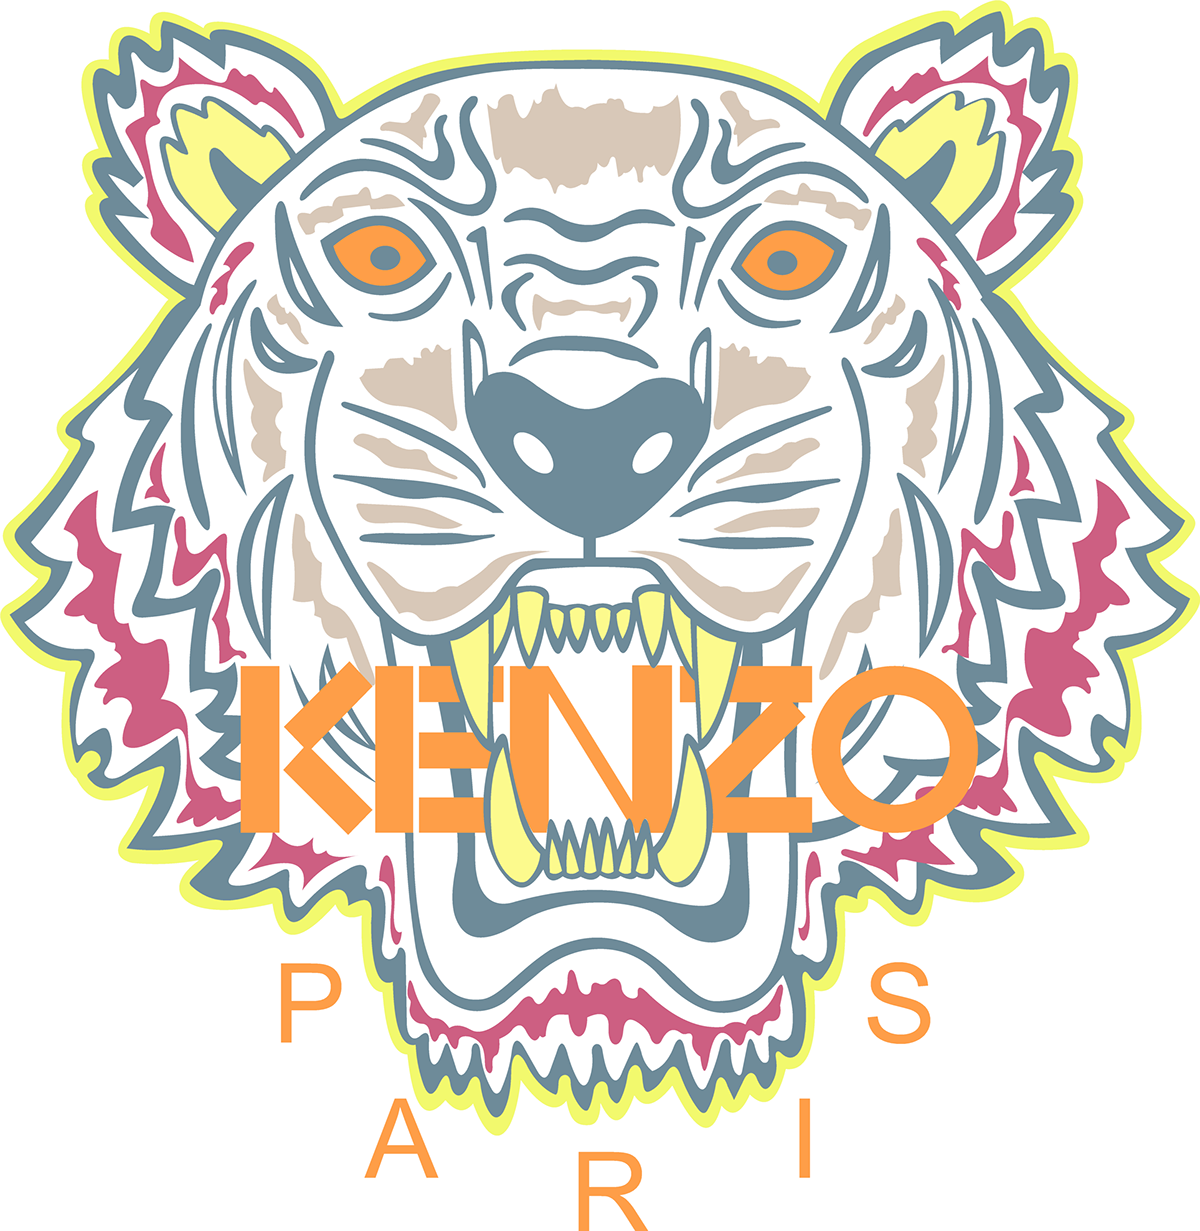 kenzo jungle logo on behance